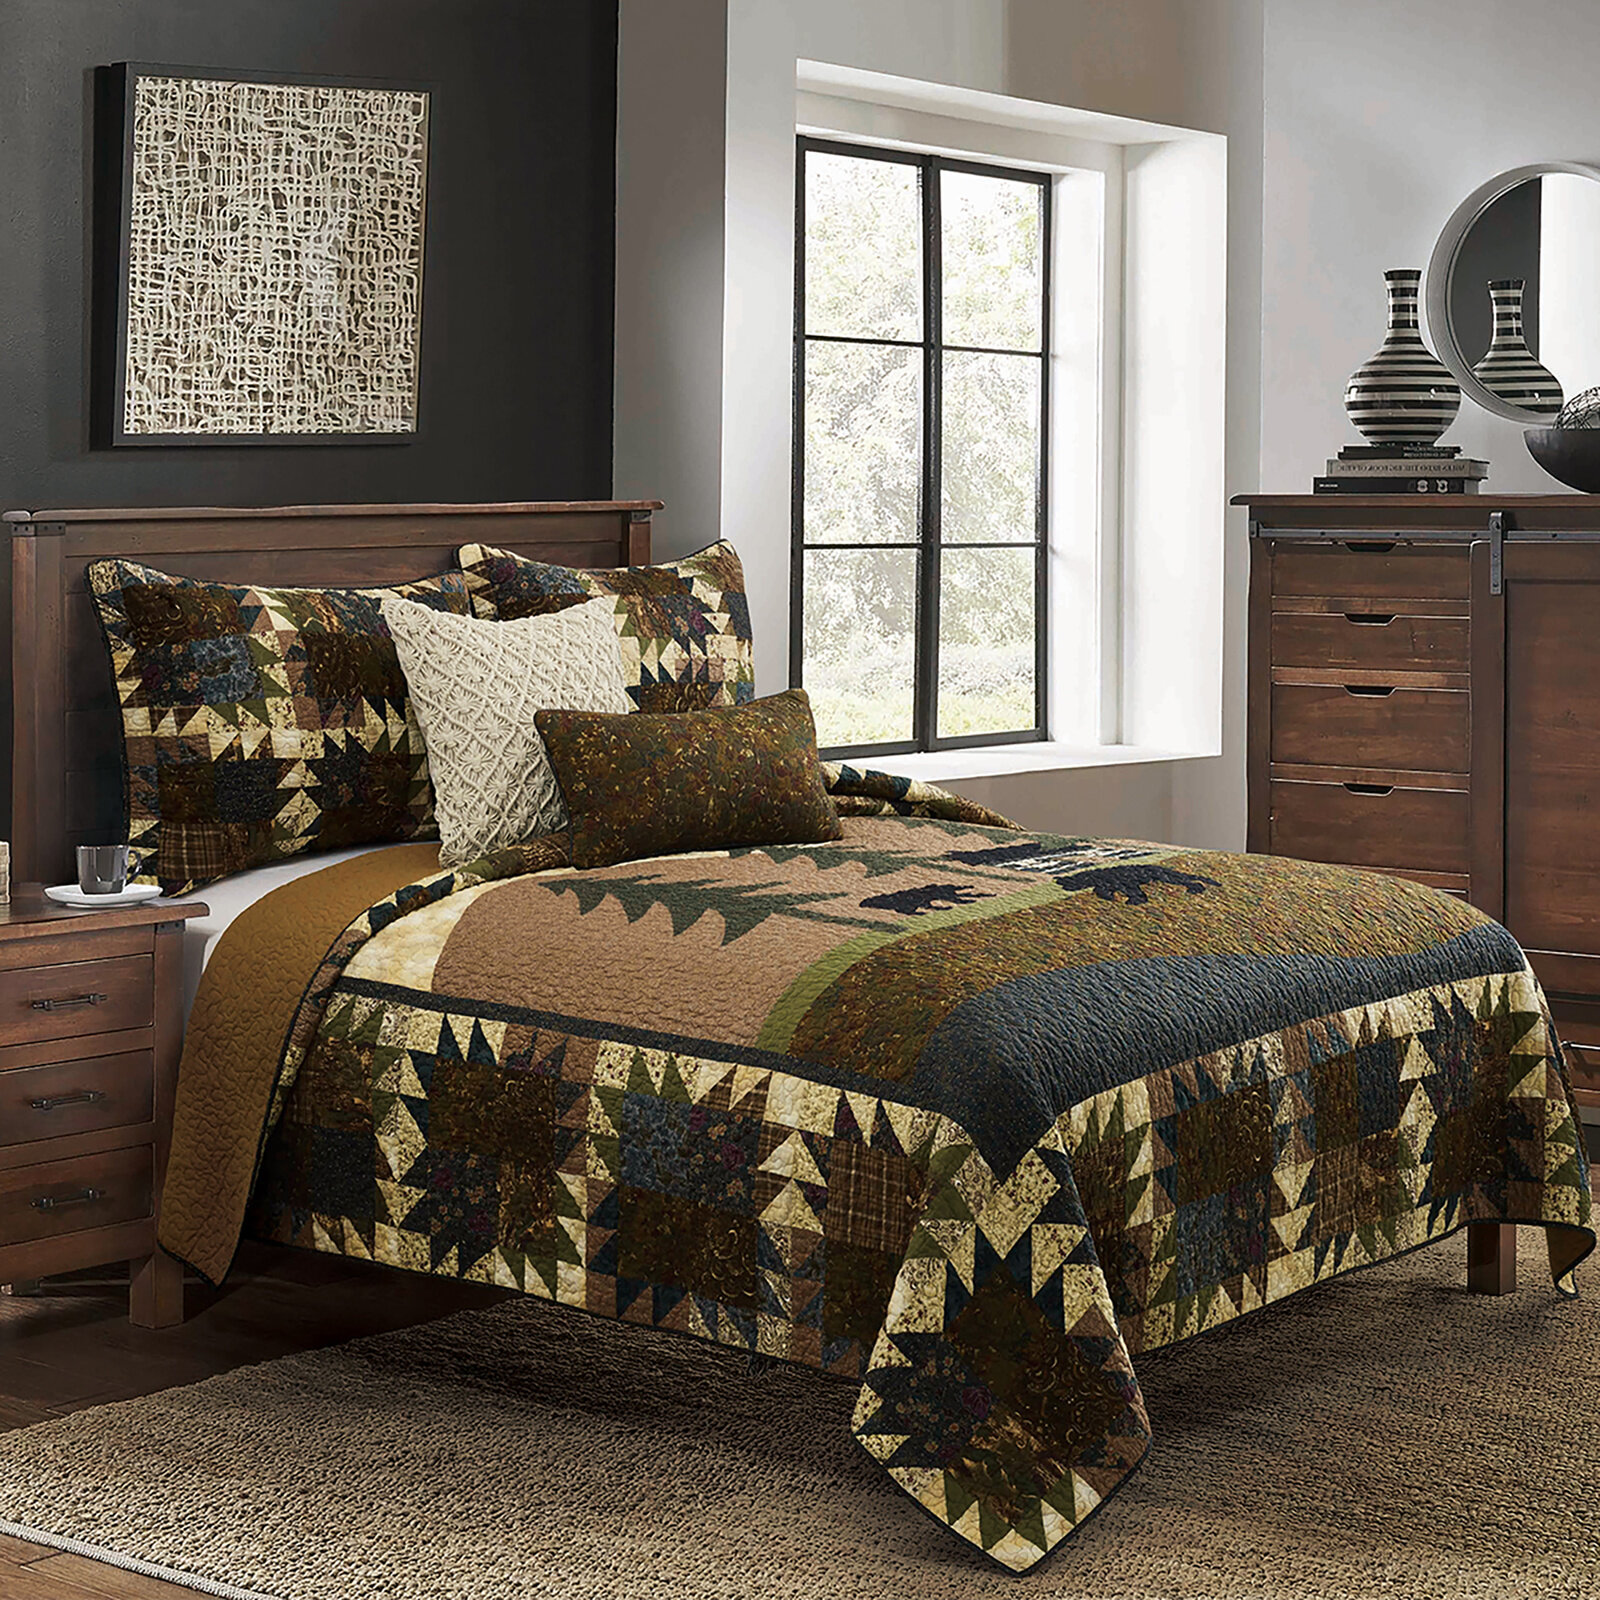 Rustic Mountain Lodge Quilt Bedding Set Cabin Woods Moose Bear Black And Grey Quilts Bedspreads Coverlets Home Garden